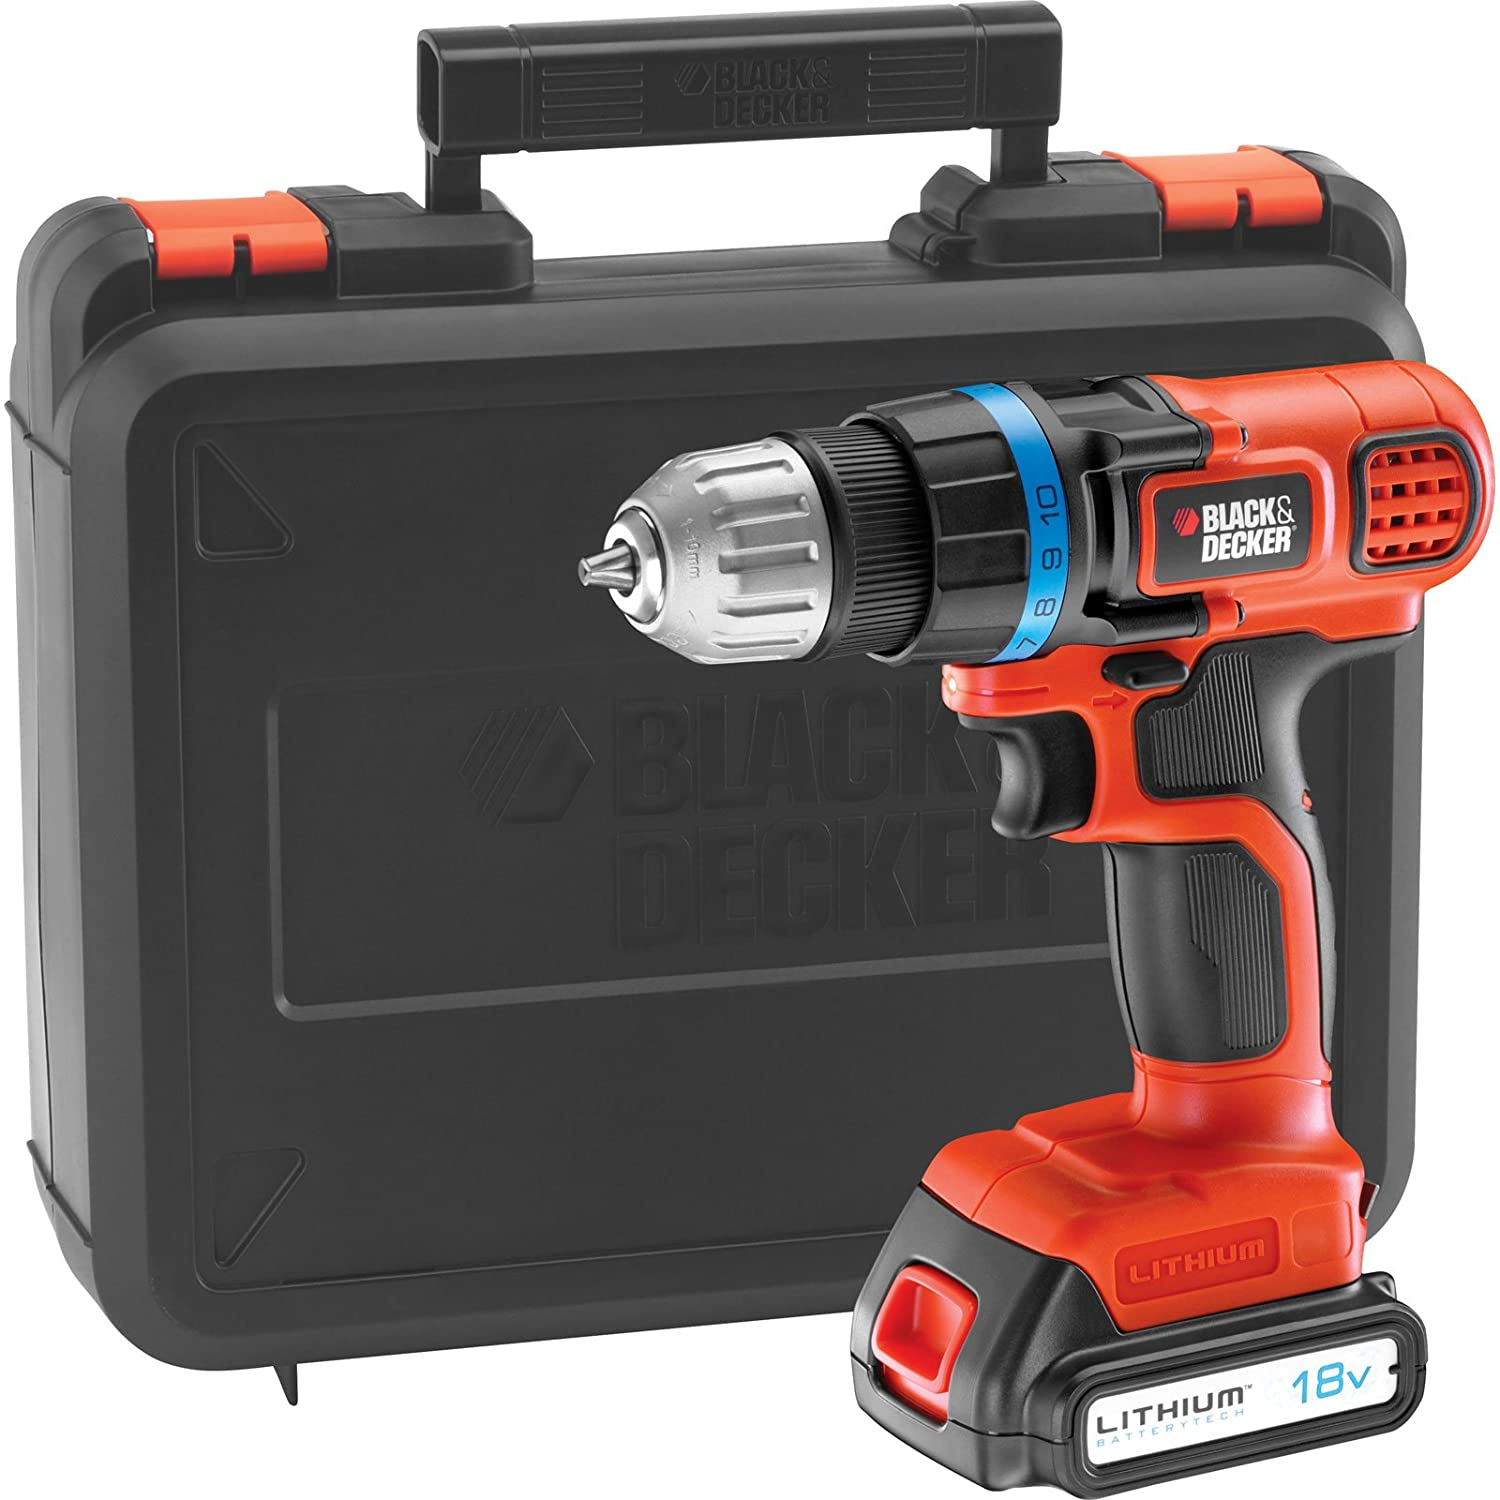 black and decker hammer drill. black \u0026 decker egbl18k 18v cordless drill driver with 1 lithium ion battery 1.5ah in kitbox: amazon.co.uk: diy tools and hammer